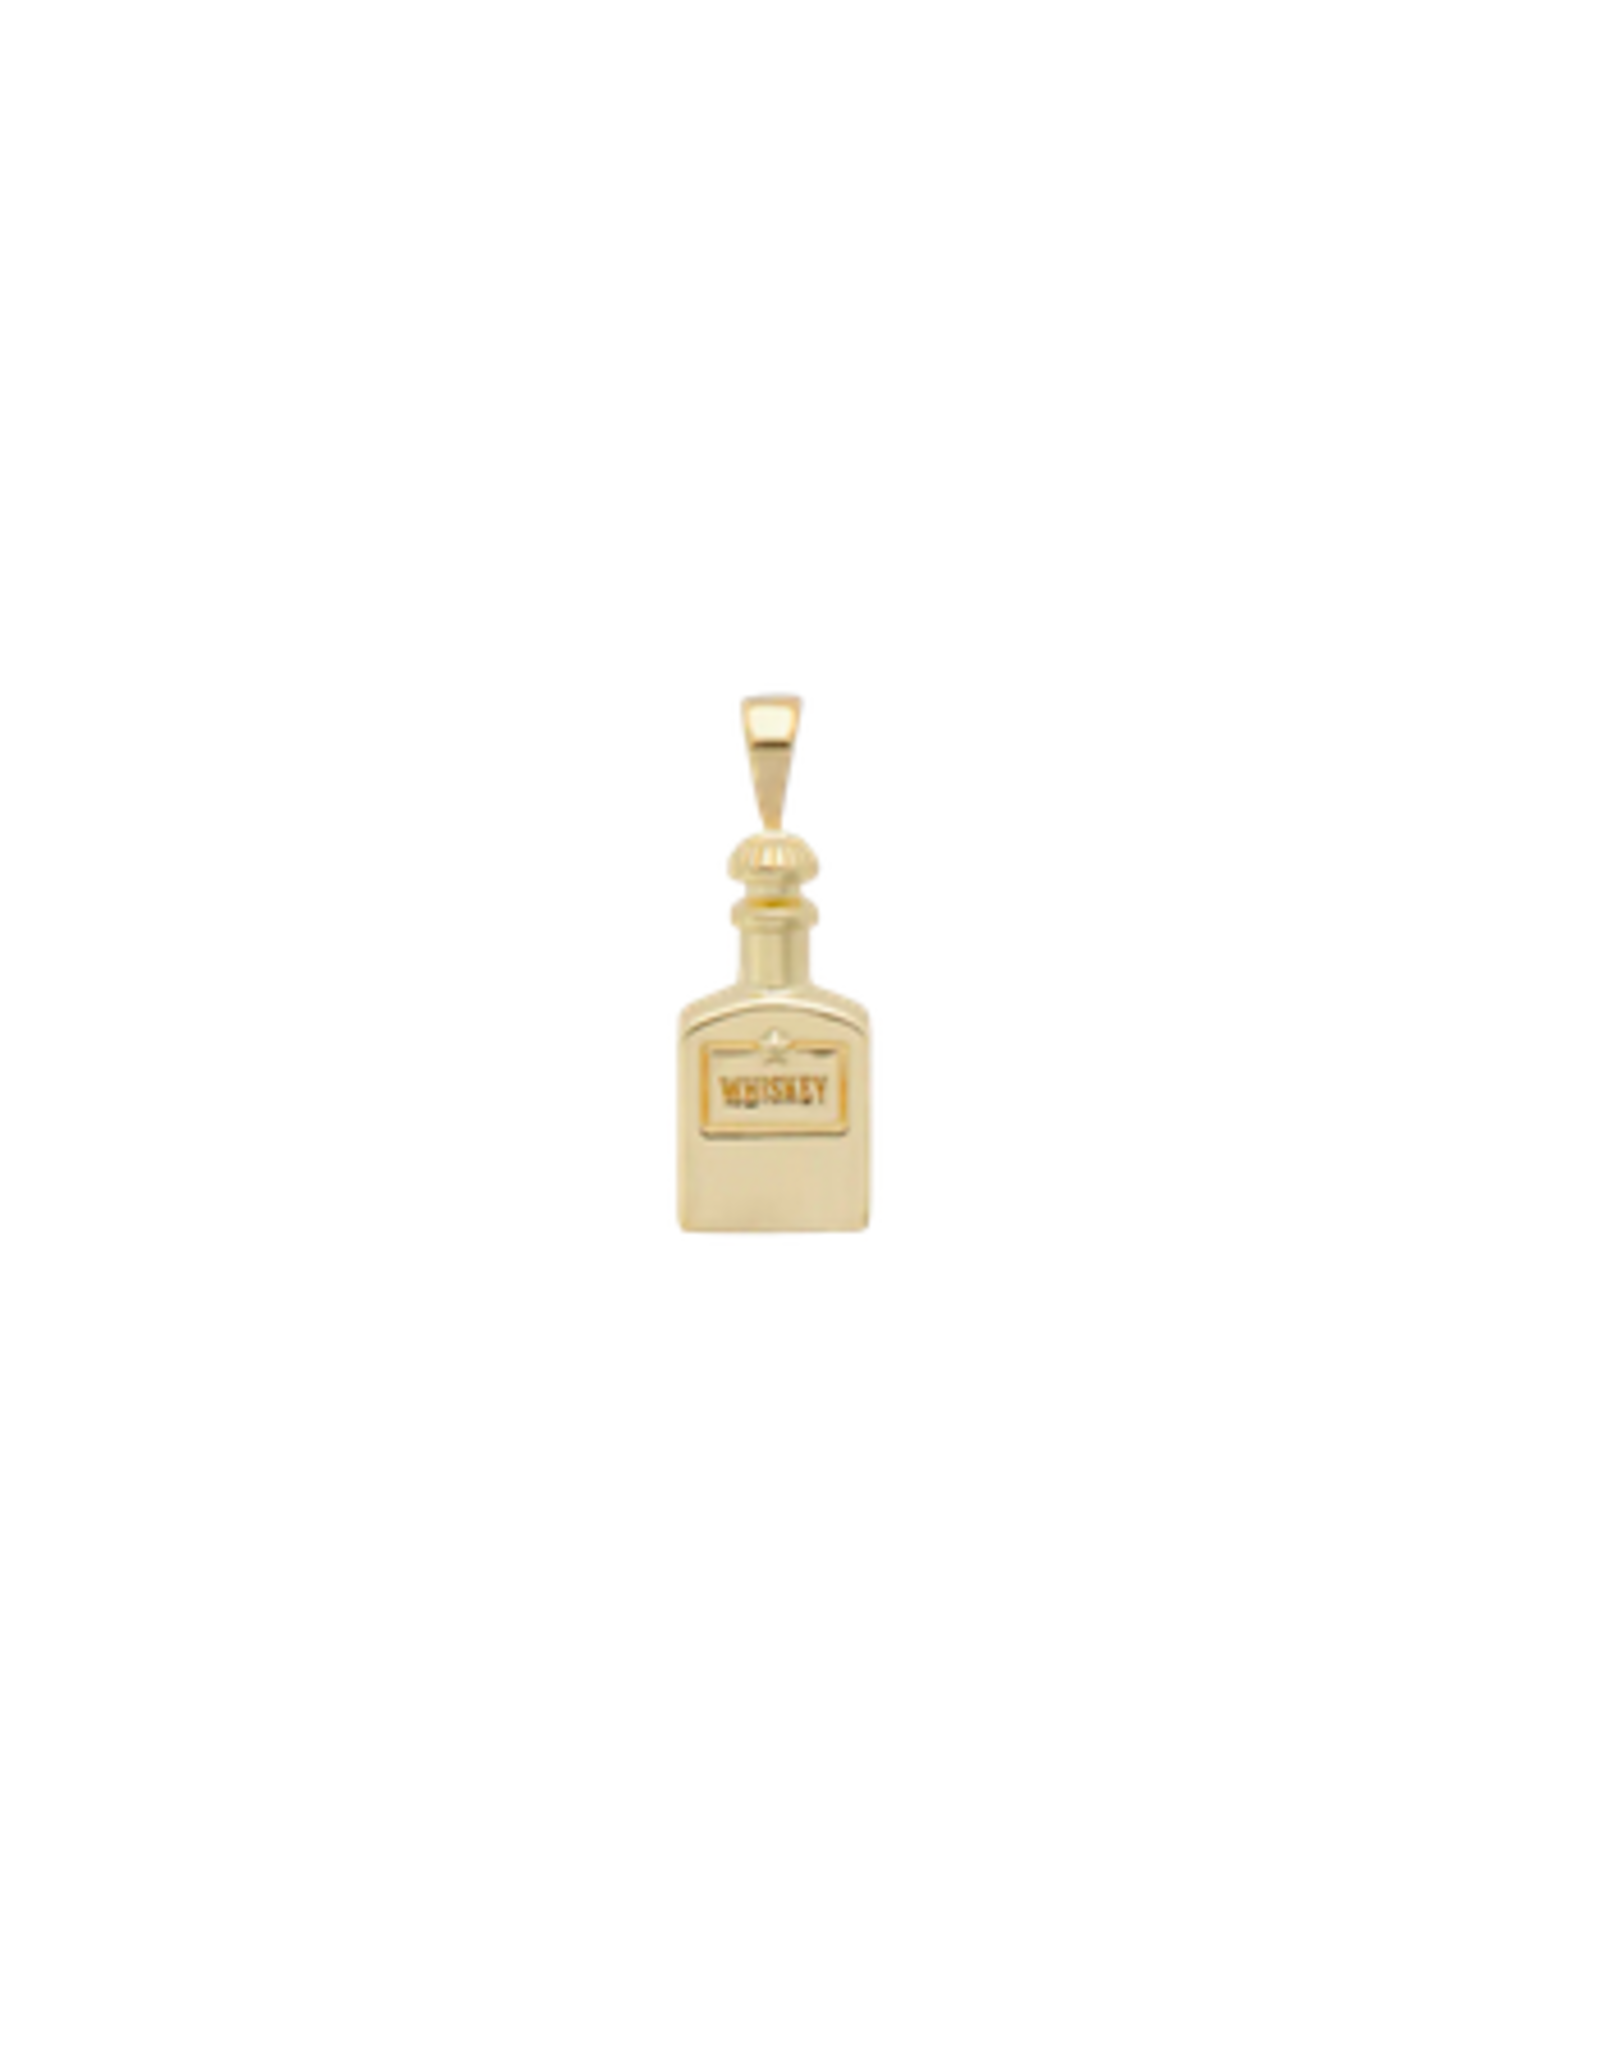 Anna + Nina Whiskey Necklace Charm Goldplated